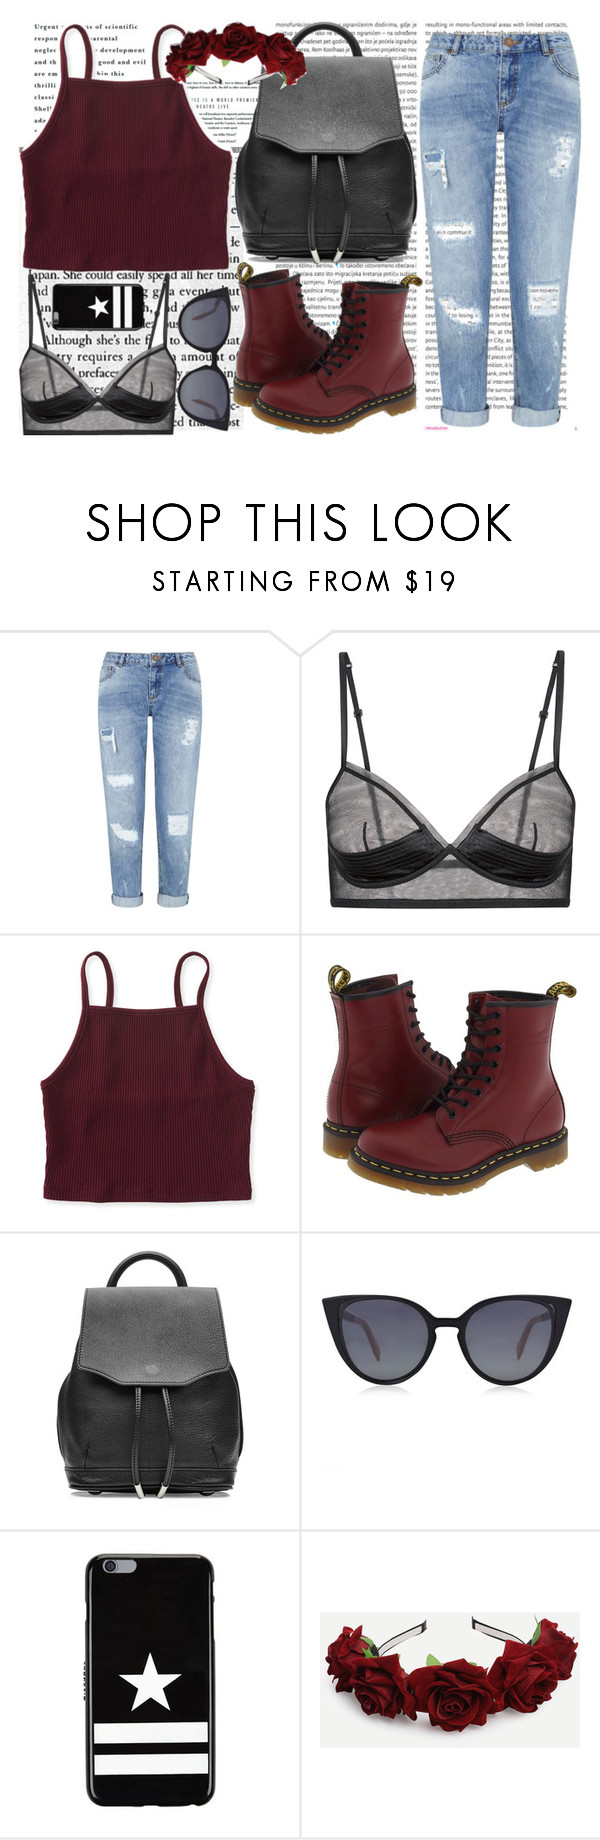 Maroon Sheer Lingerie Denim Jeans And Givenchy Top Up Upan